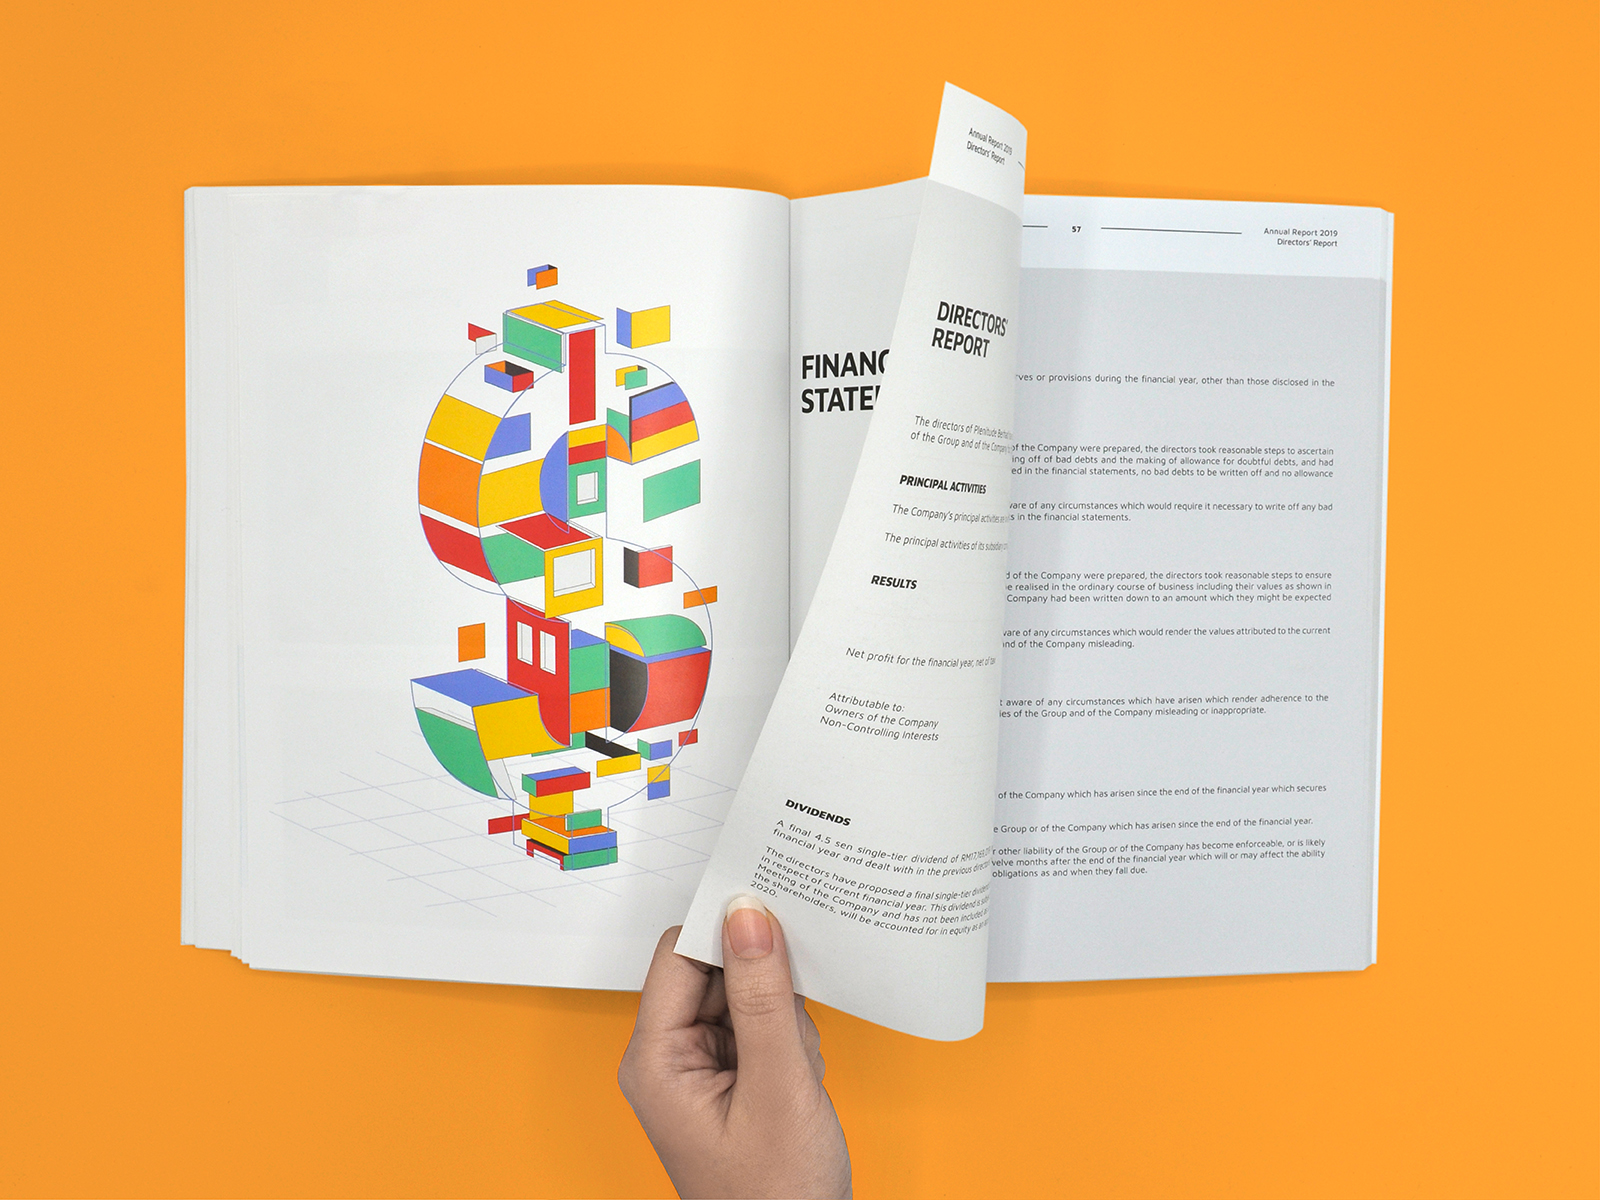 Plenitude annual report 2019 inner page layout design with art direction elemental shapes forming a money sign for finance section